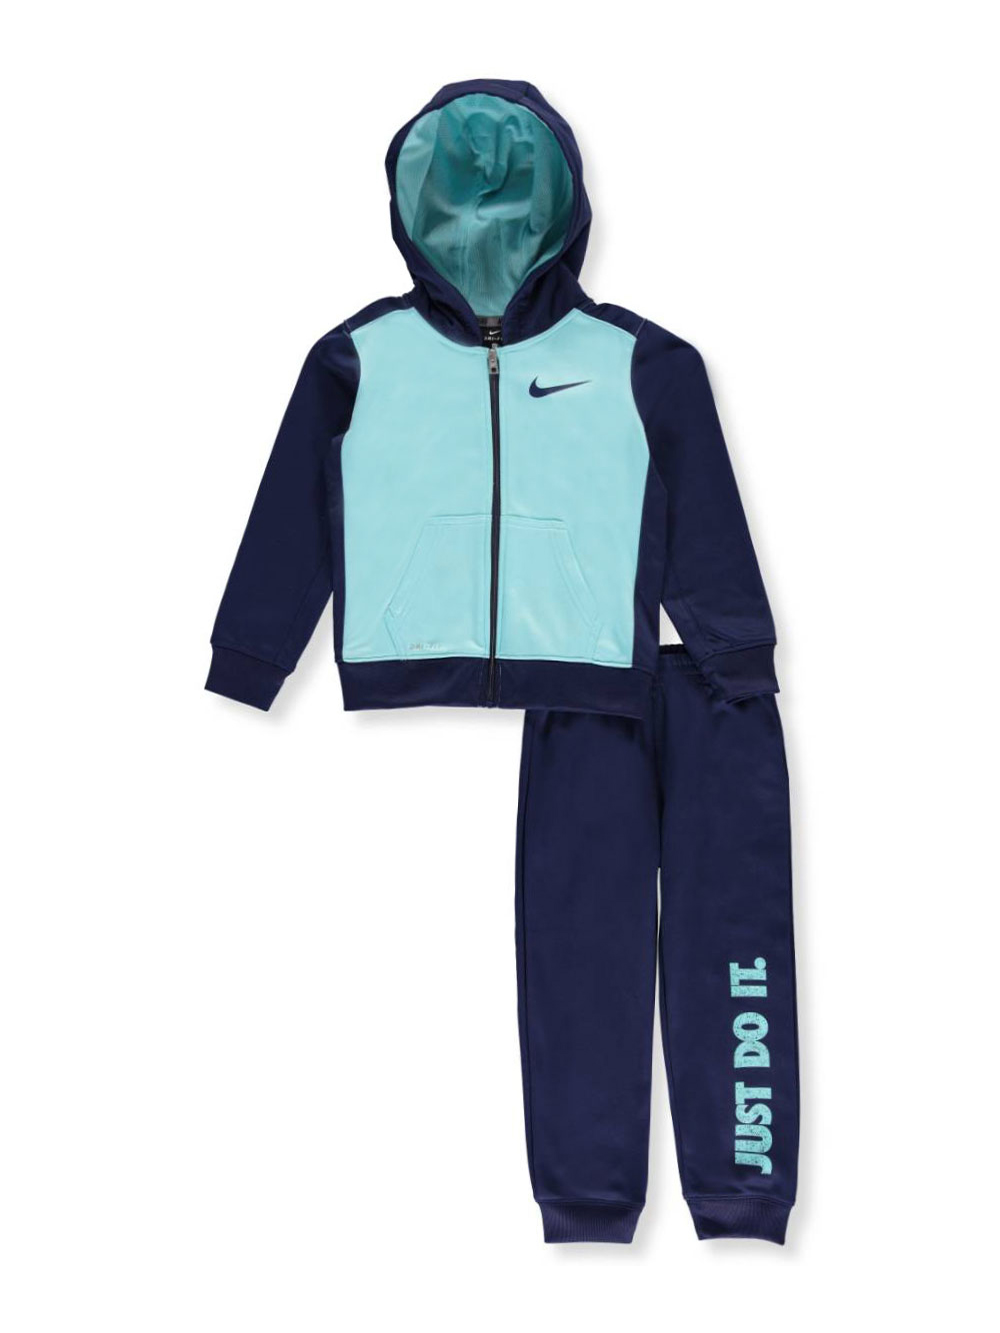 4b1fad8fb Nike Little Boys' Toddler Therma Dri-Fit 2-Piece Tracksuit (Sizes 2T - 4T)